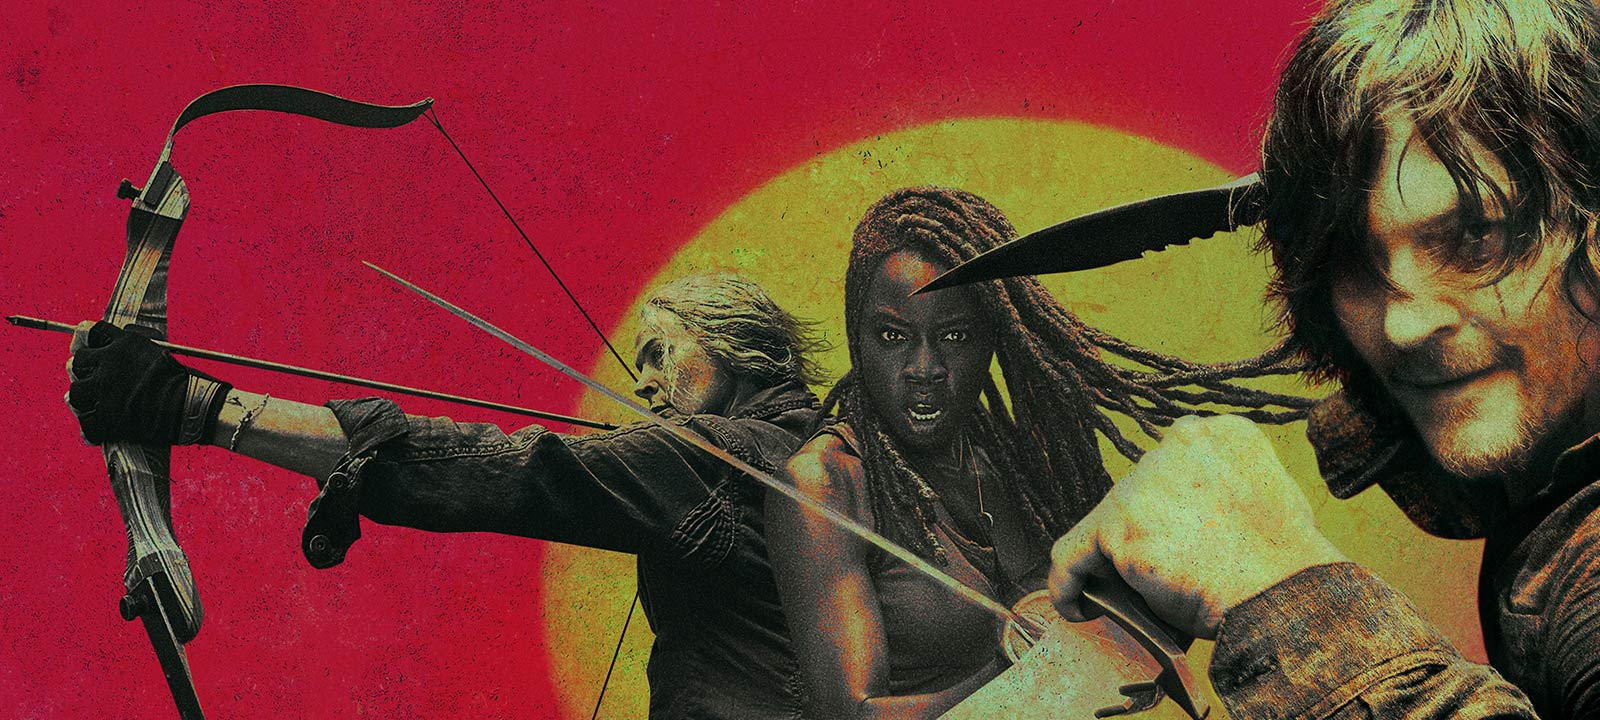 the-walking-dead-season-10-carol-mcbride-michonne-gurira-key-art-800×600